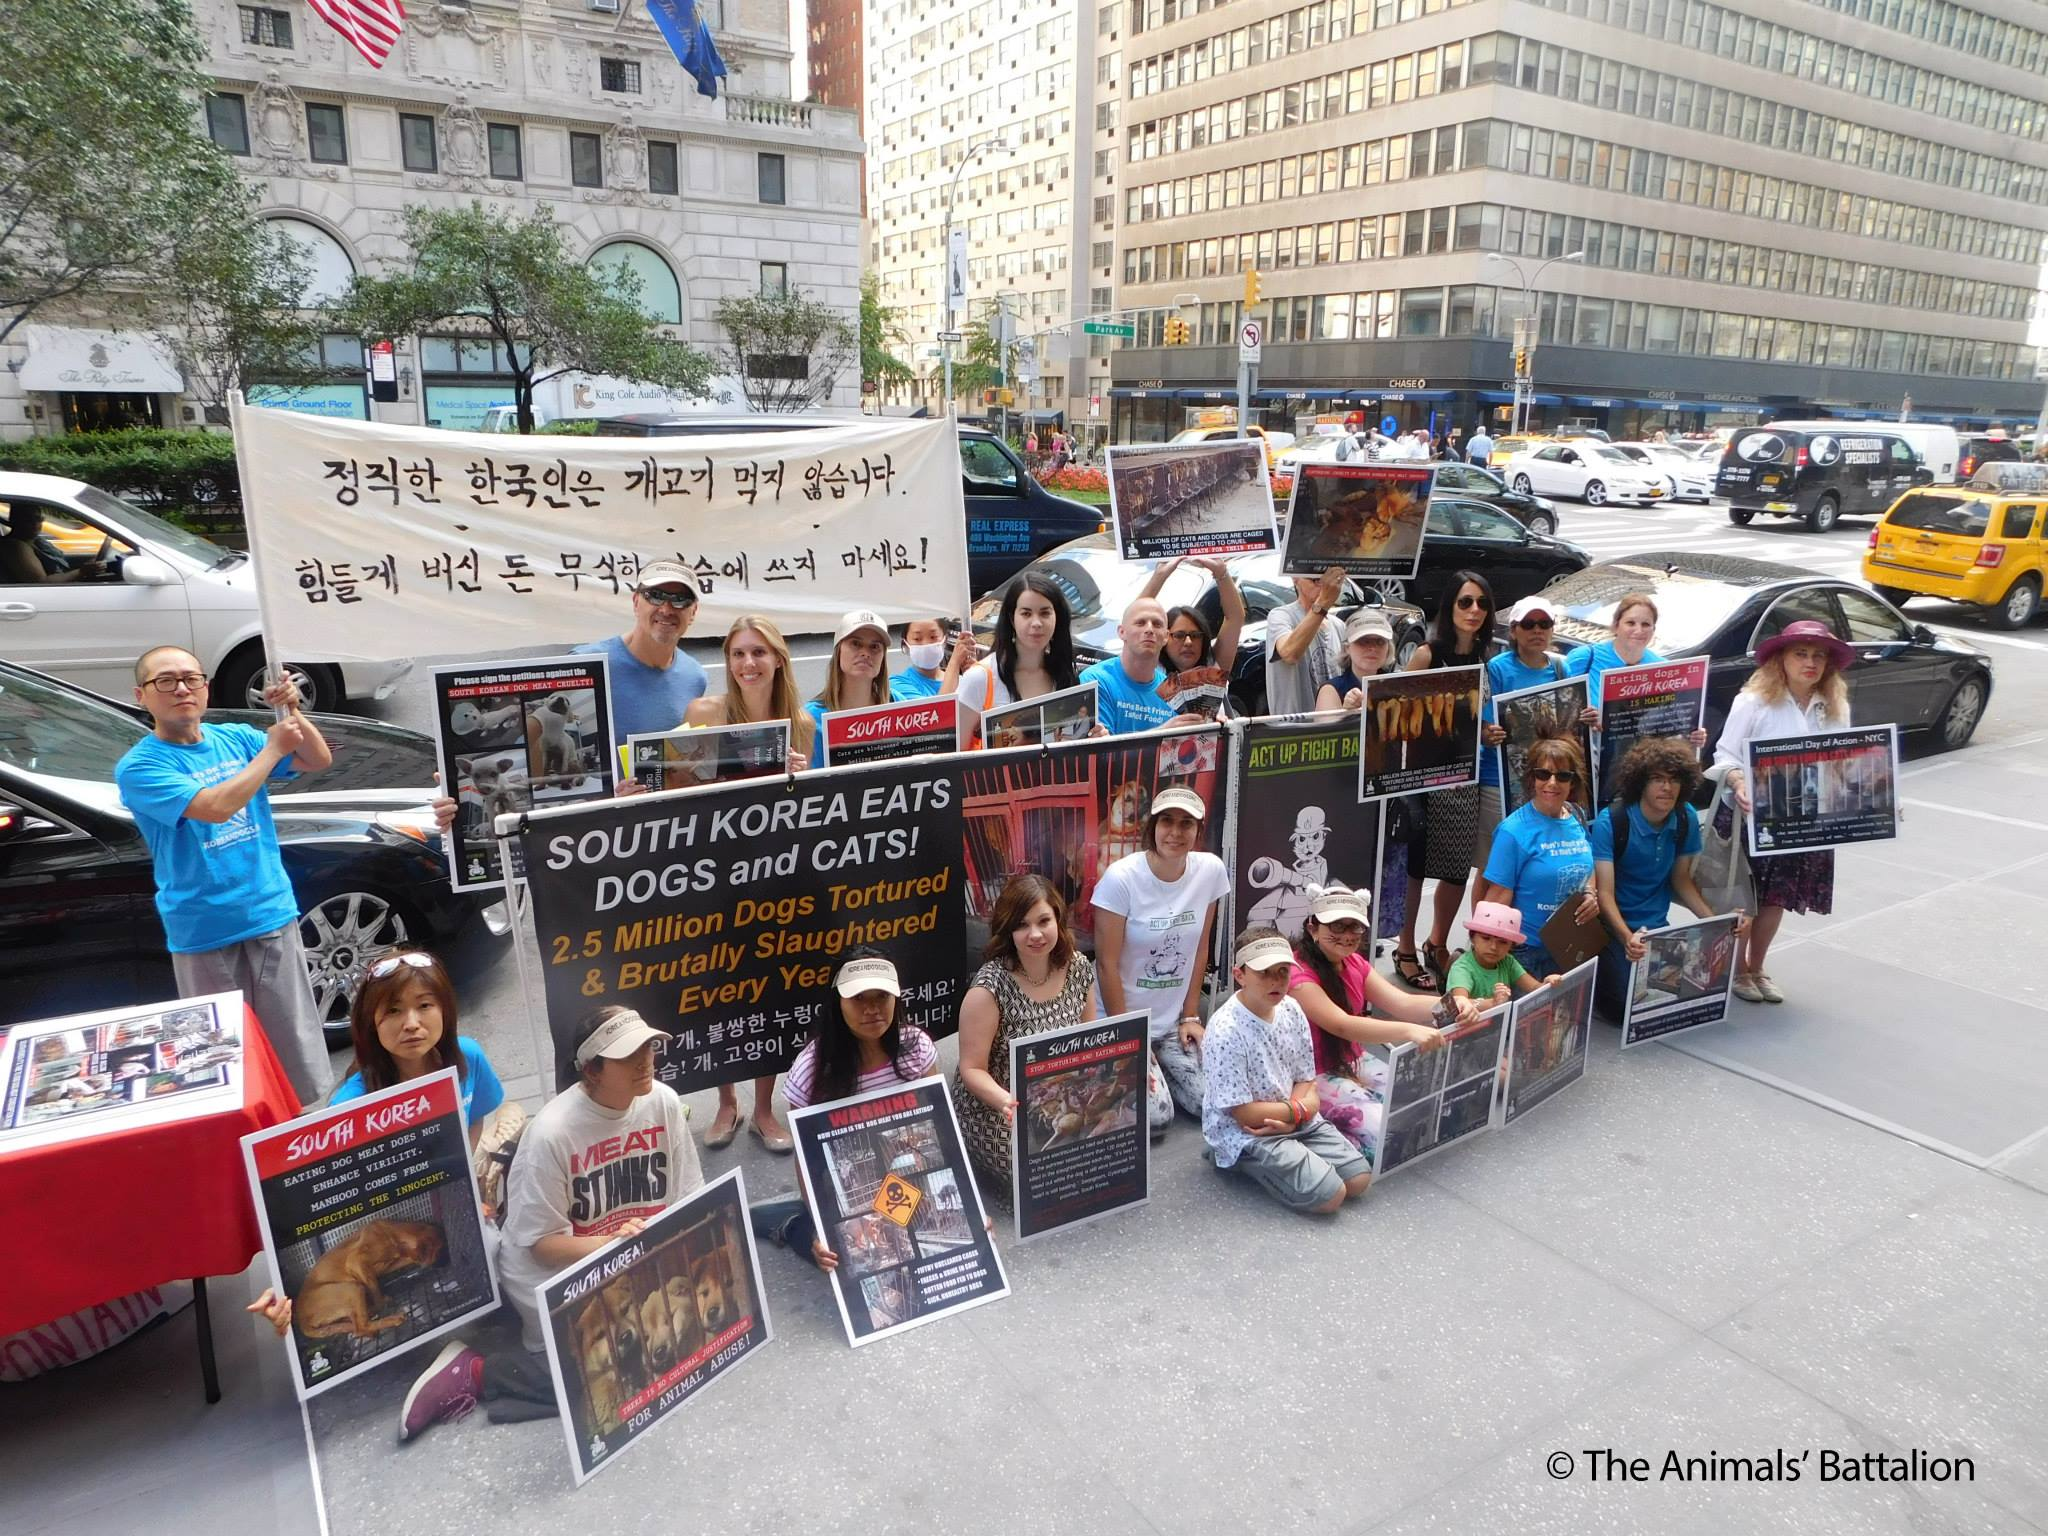 Demonstration at the Korean Consulate General's Office in New York, July 23, 2015.